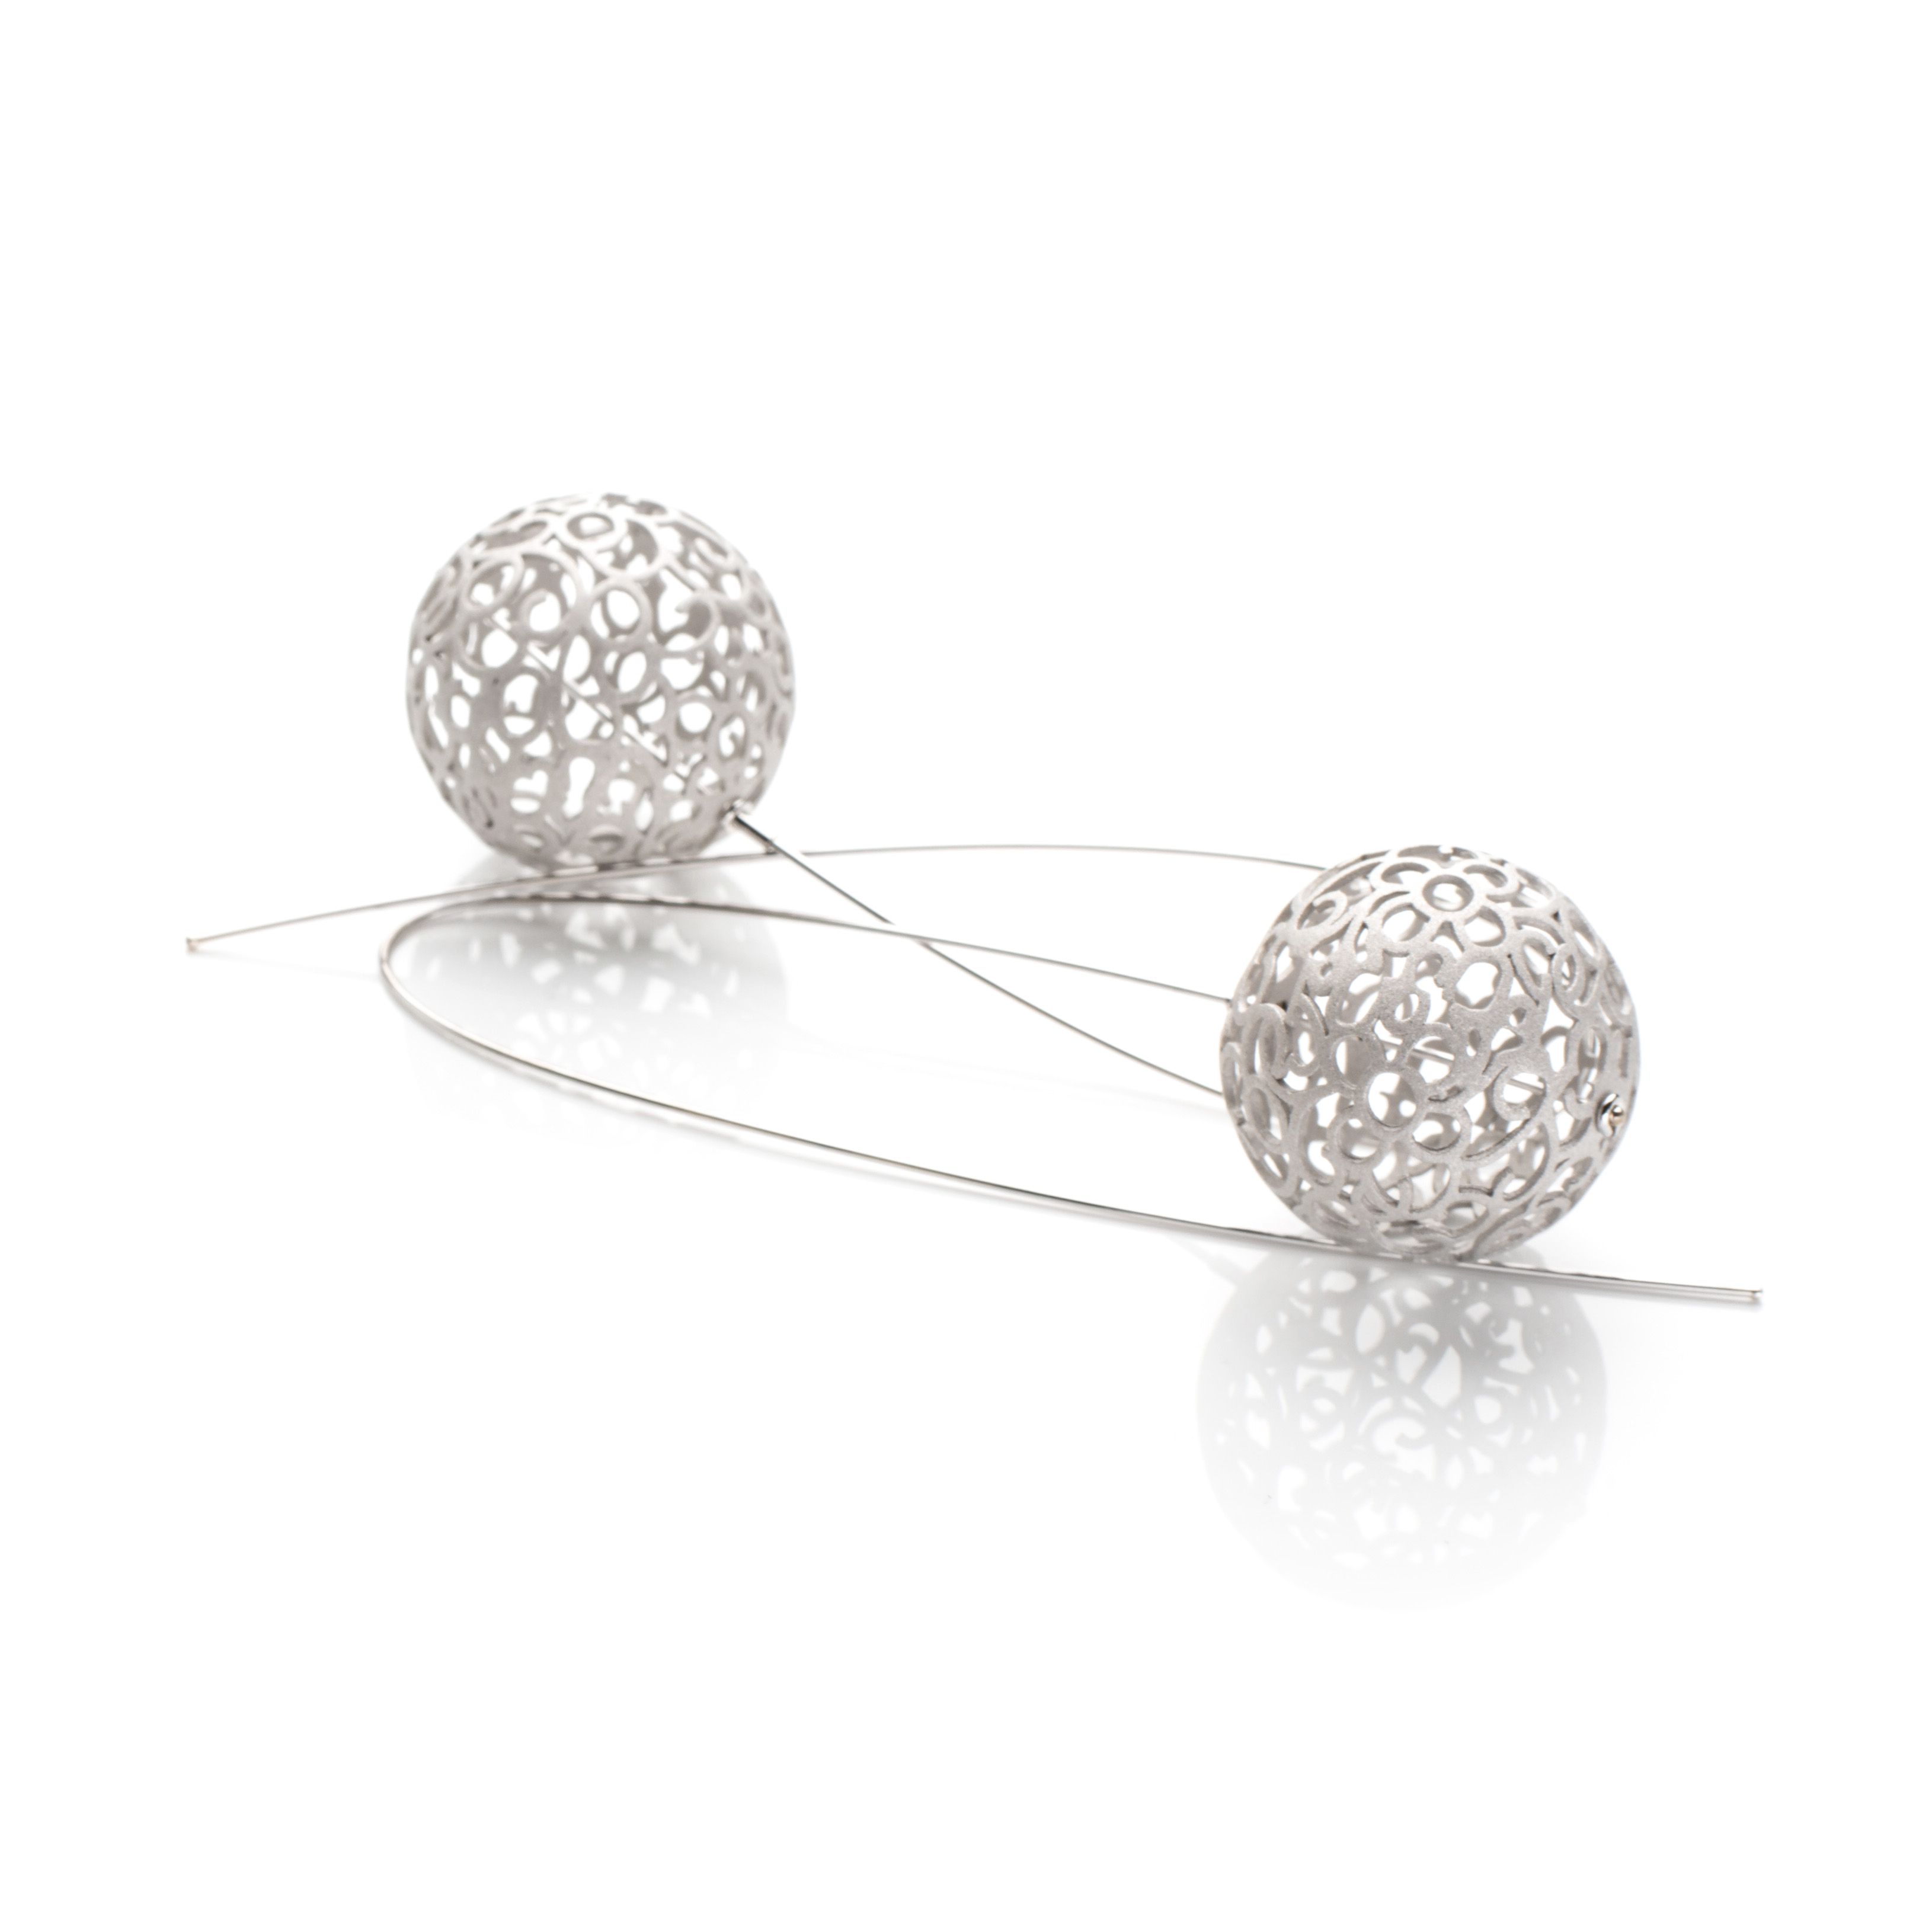 Lindenau Matte Silver Bobble Earrings